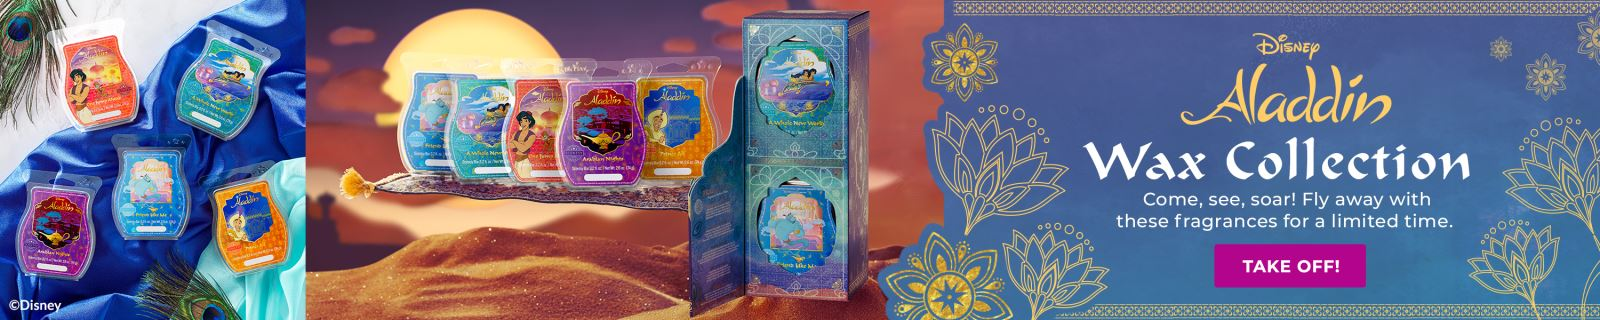 Aladdin Wax Collection